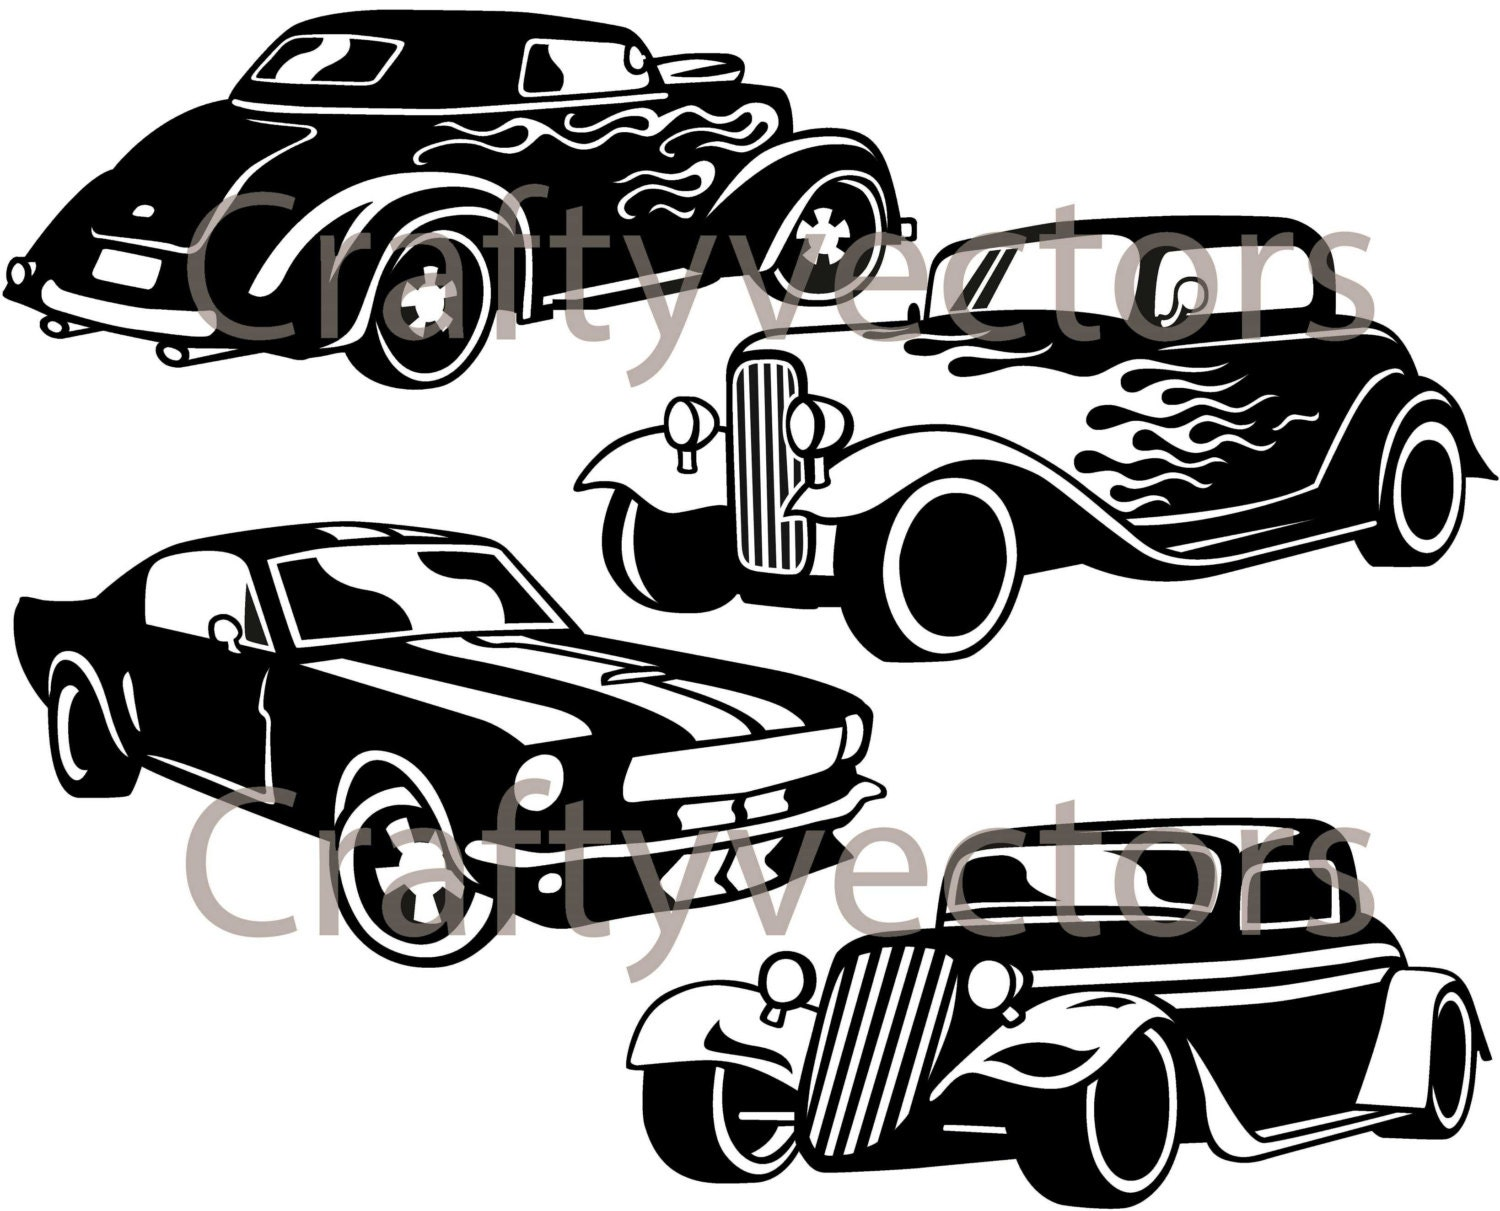 Car cutting sticker design - Hot Rod Cars Svg Vector Files